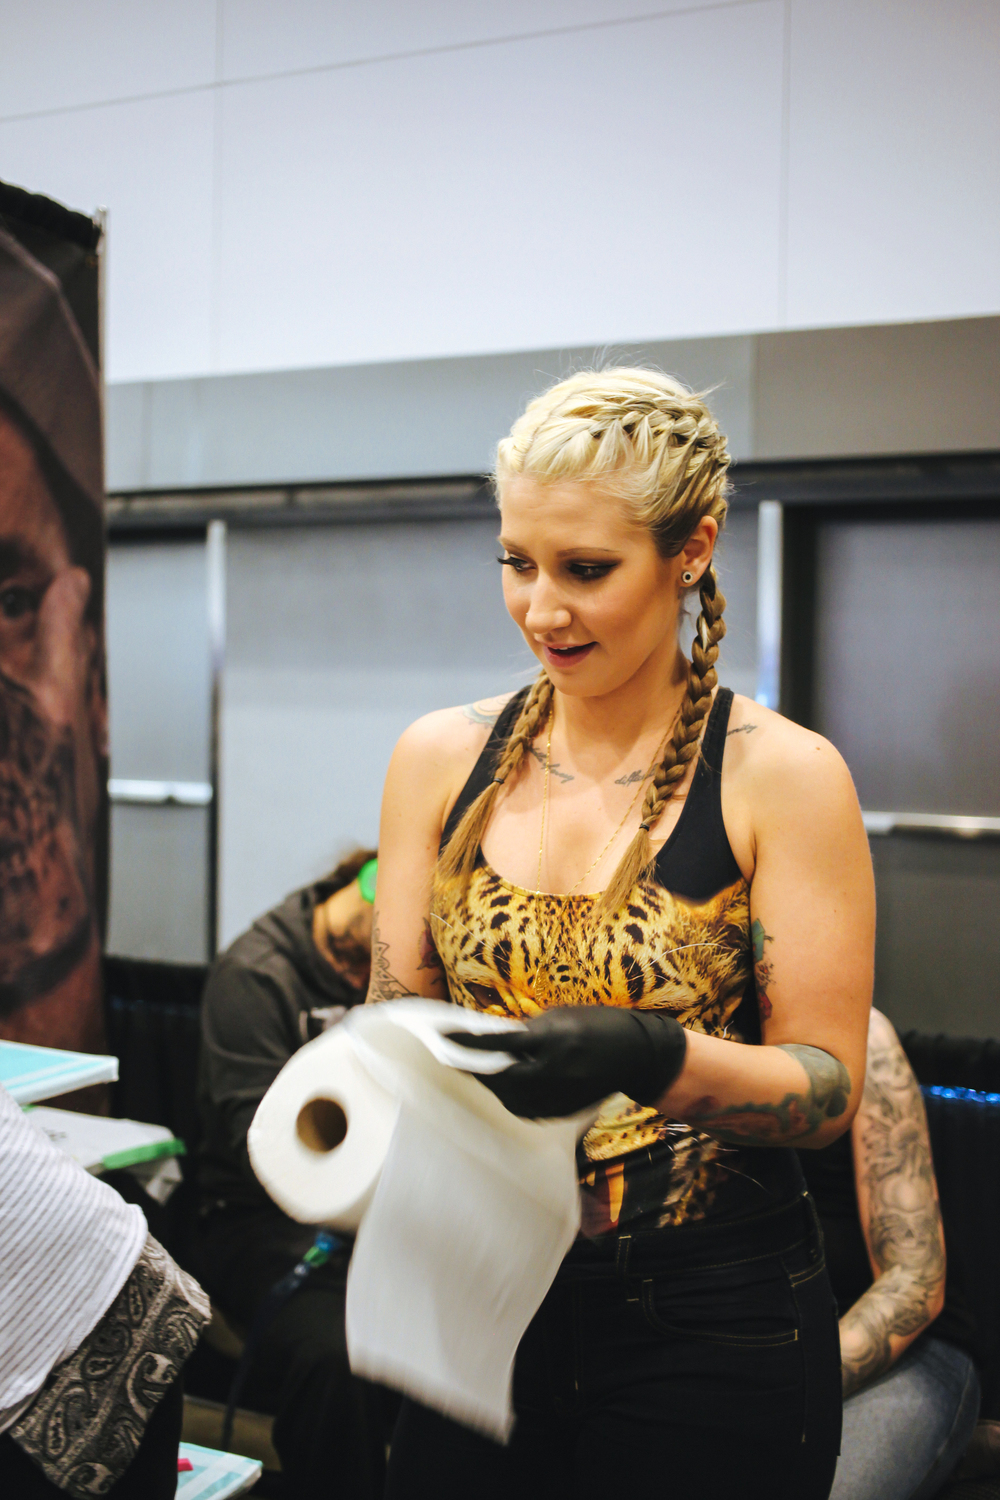 VancouverTattooConvention-8.jpg